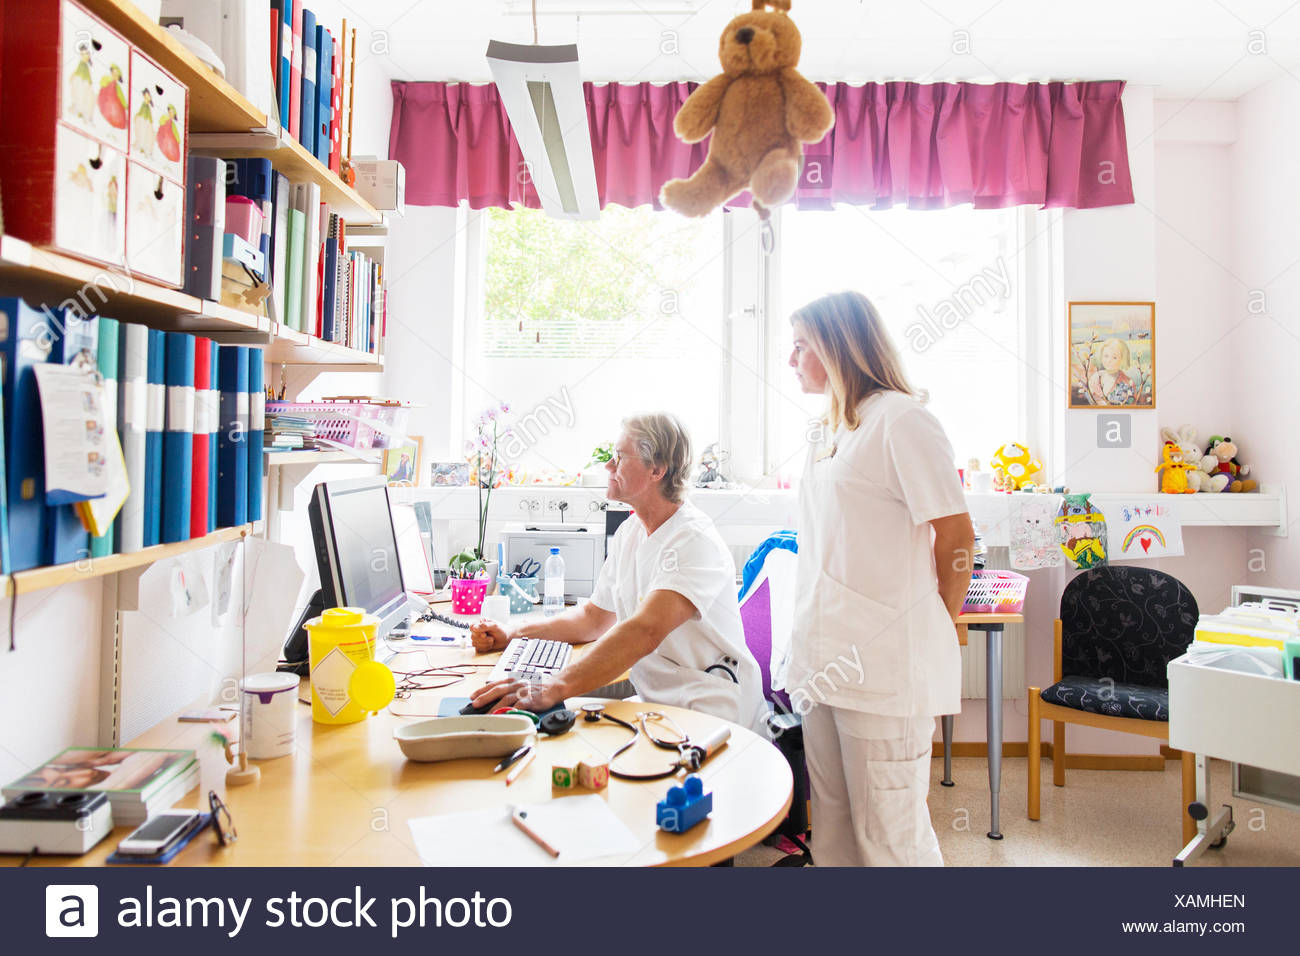 Doctor and nurse looking at computer monitor - Stock Image